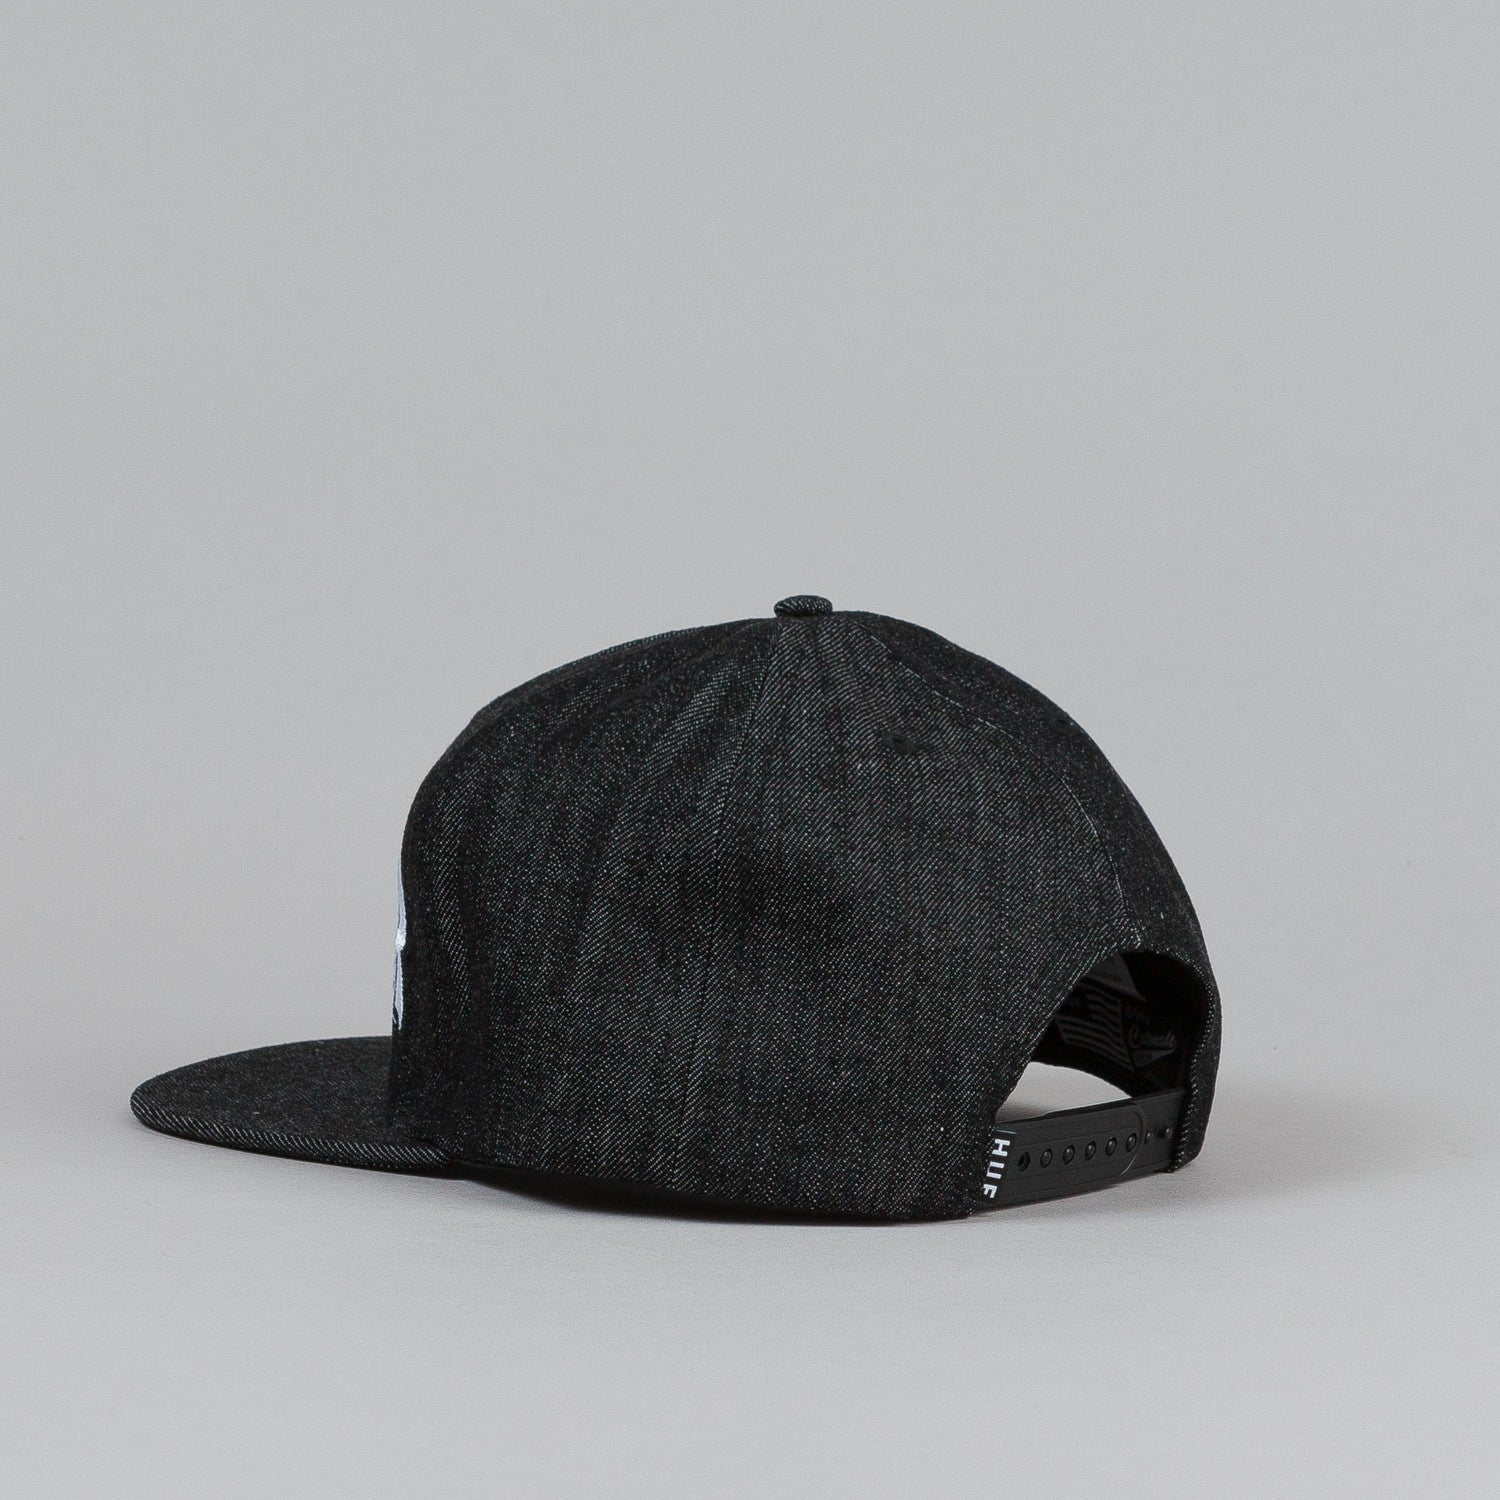 HUF X Thrasher Asia Tour Snapback Cap Black Denim